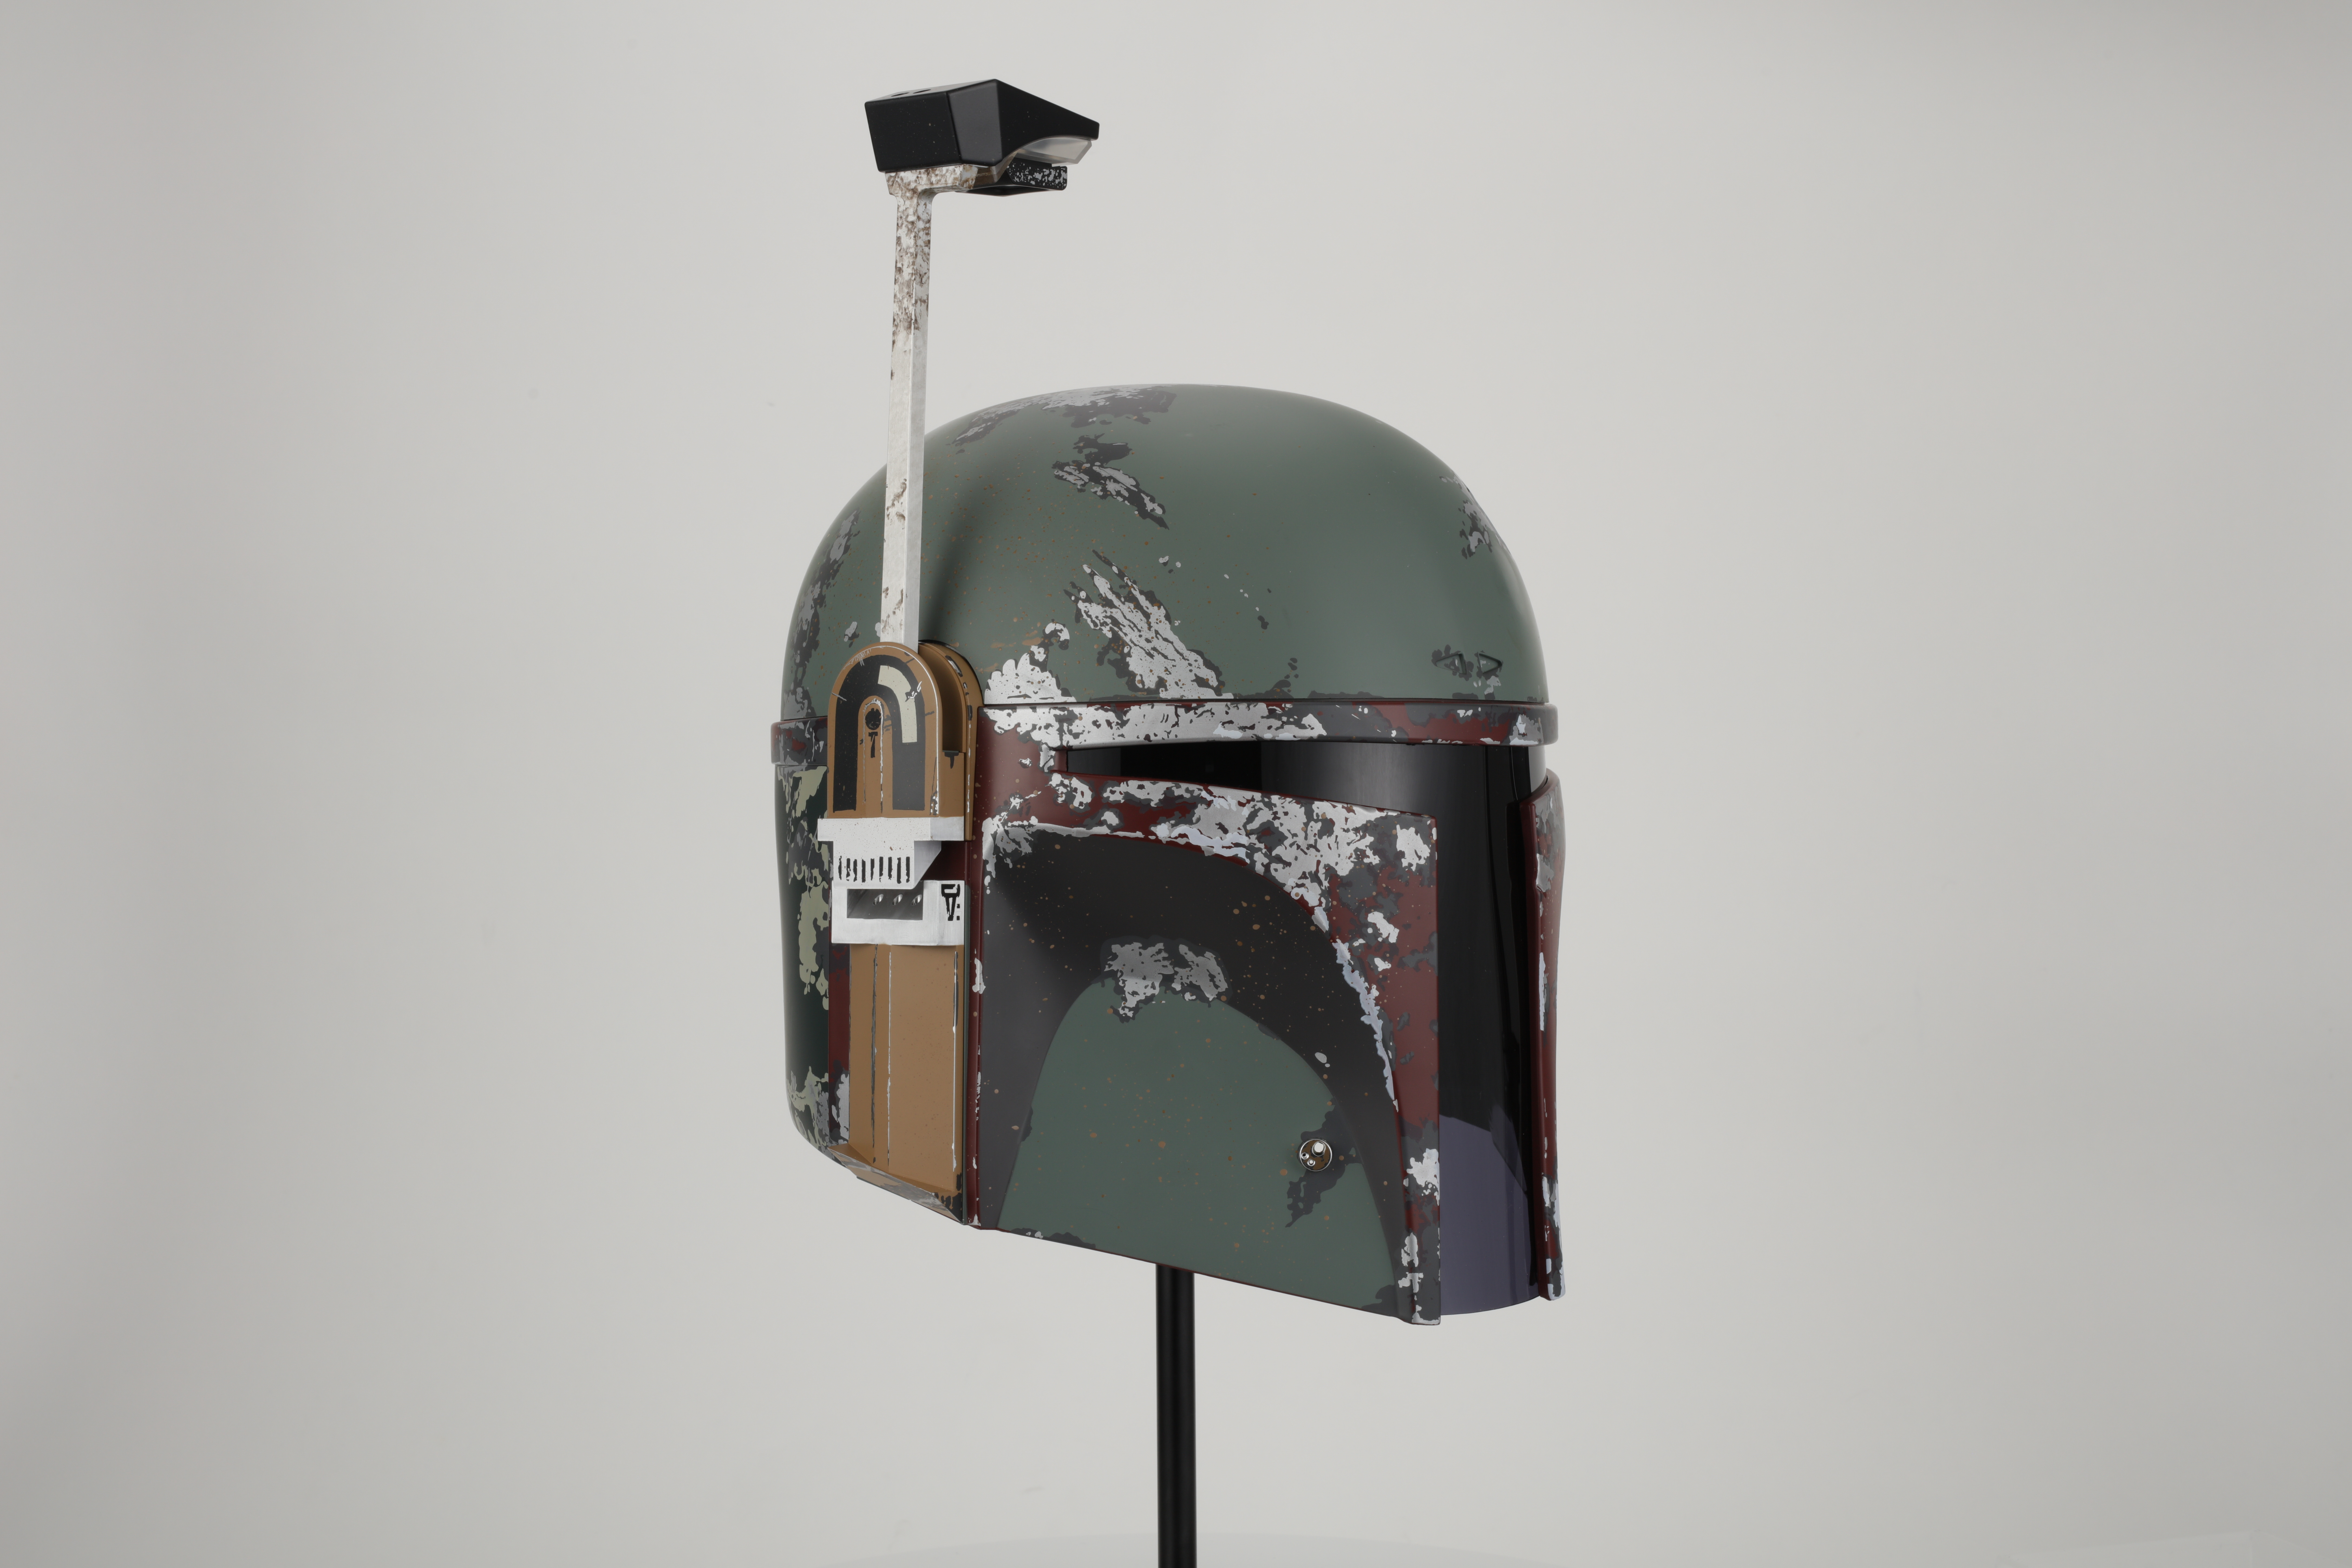 EFX Collectibles - Boba Fett Precision Crafted Replica Helmet 03.jpg